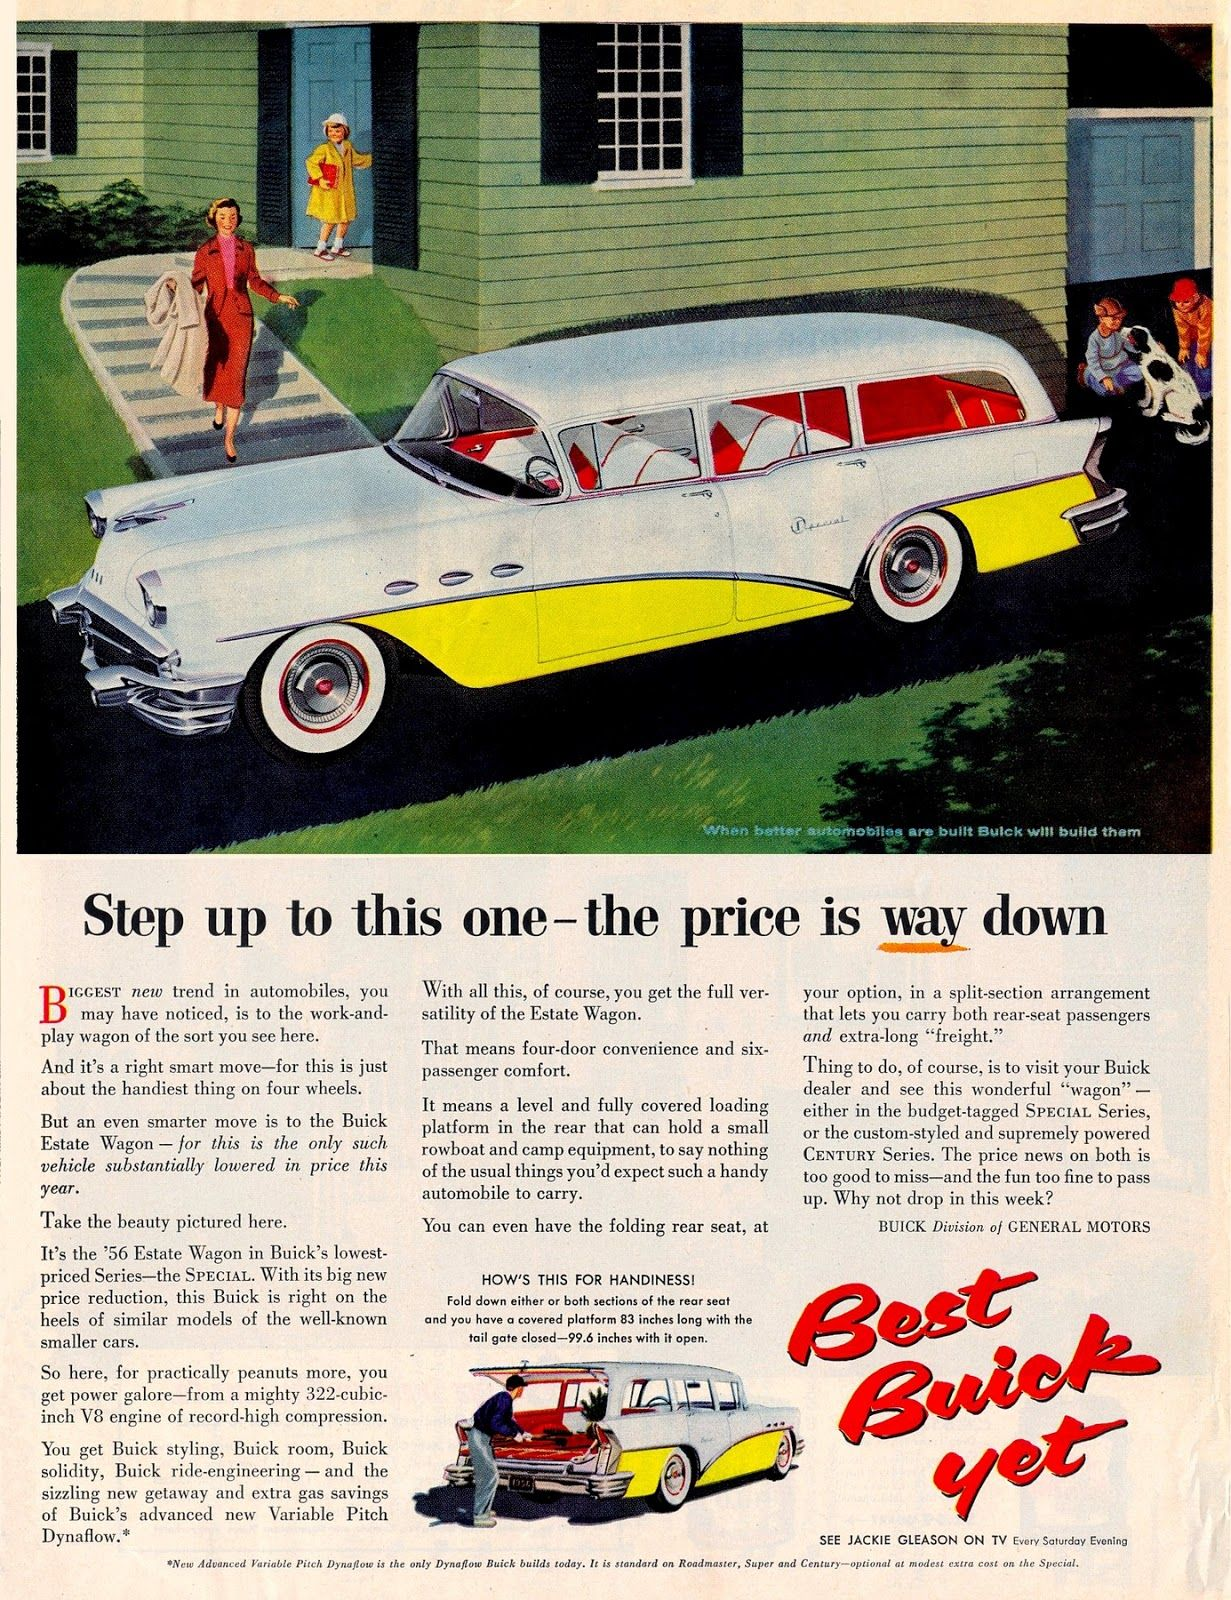 1956 buick special 6 passenger 4 door estate wagon ad